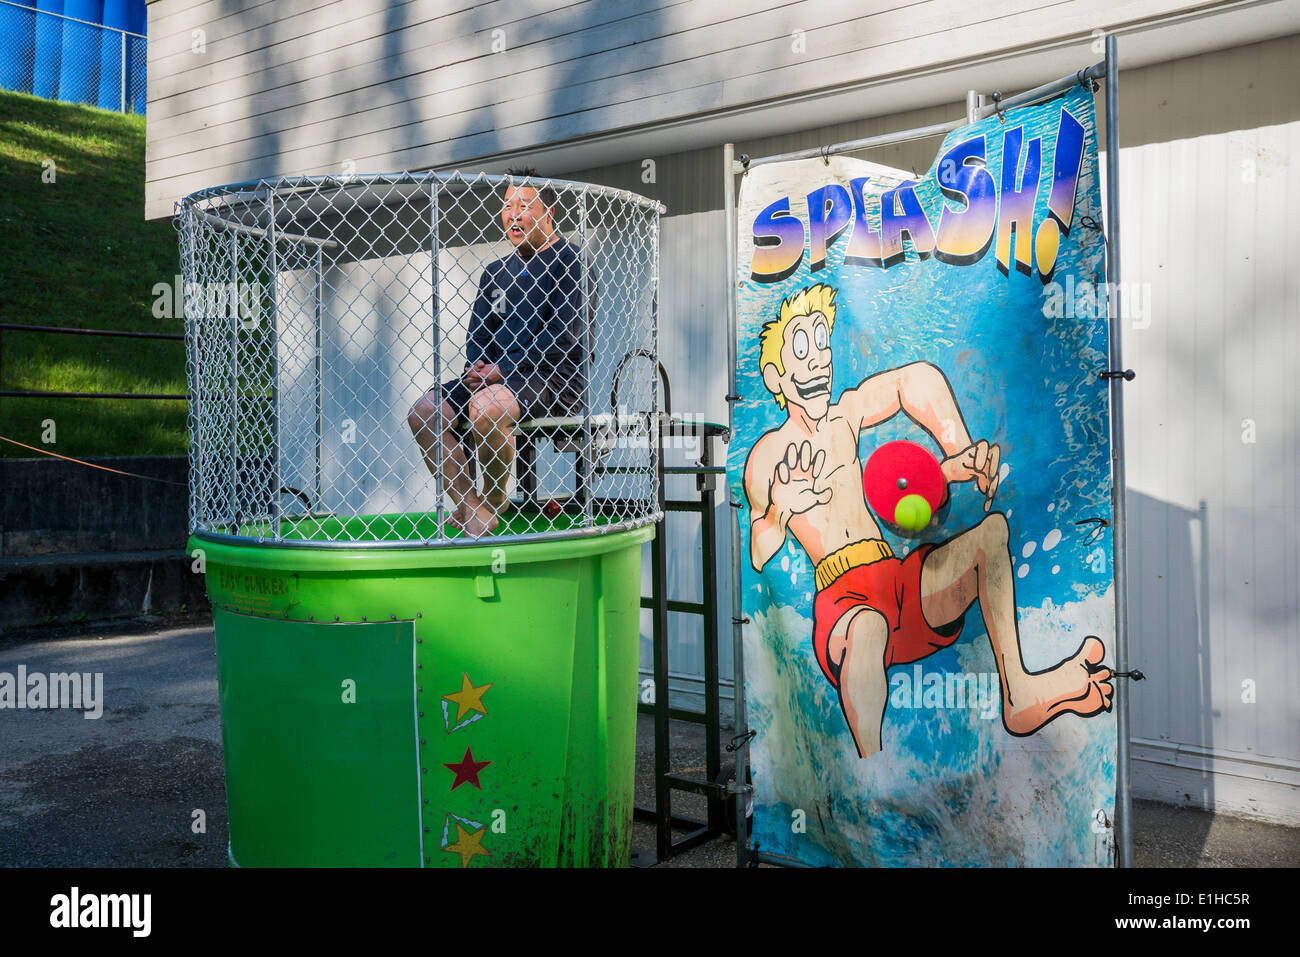 Ball hits button of dunk tank. - Stock Image